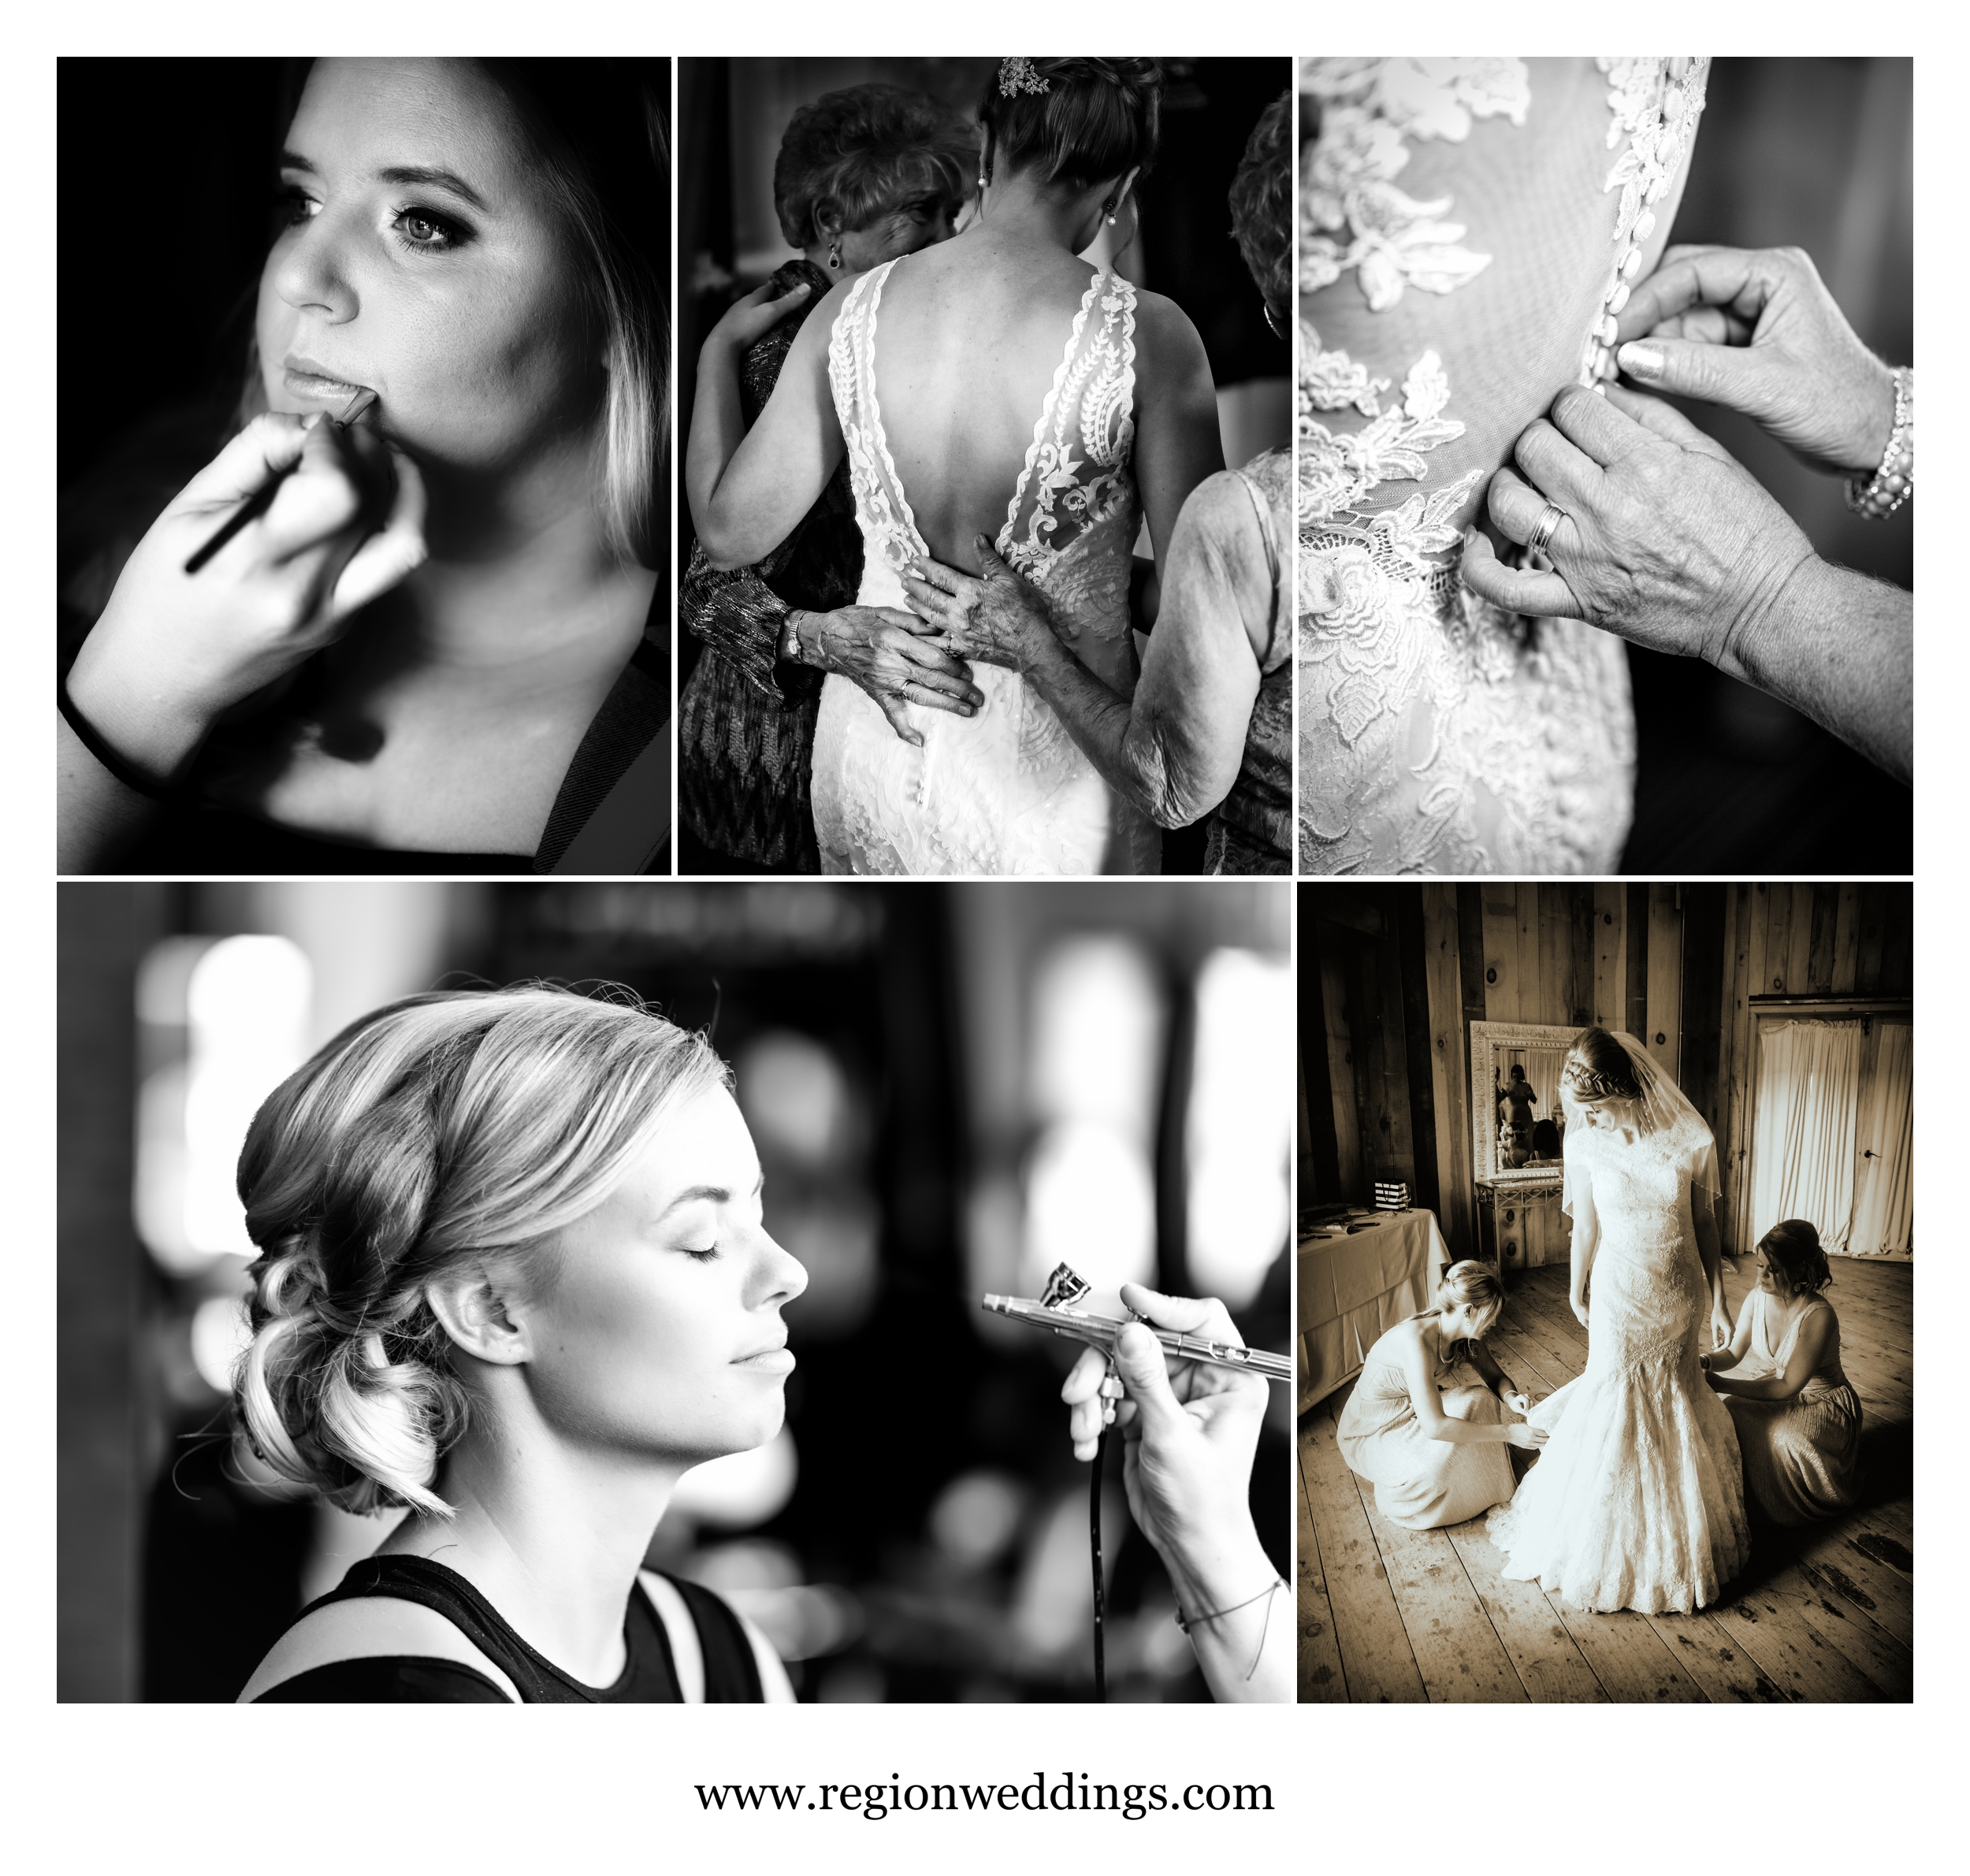 Bridal prep photos in black and white and sepia tones.